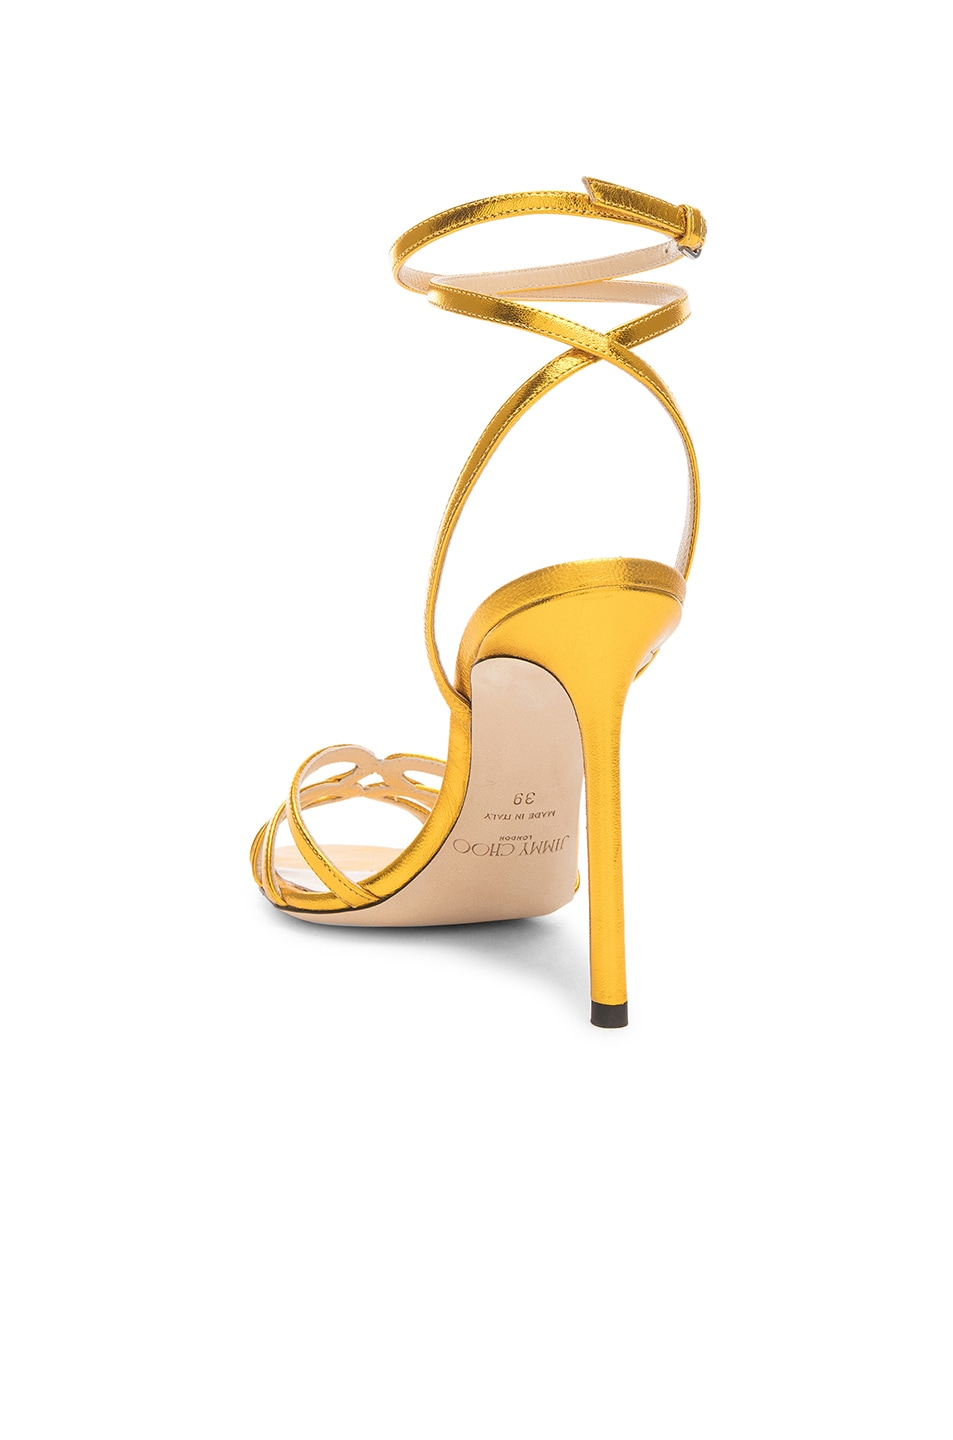 Image 3 of Jimmy Choo Leather Mimi 100 Sandal in Saffron